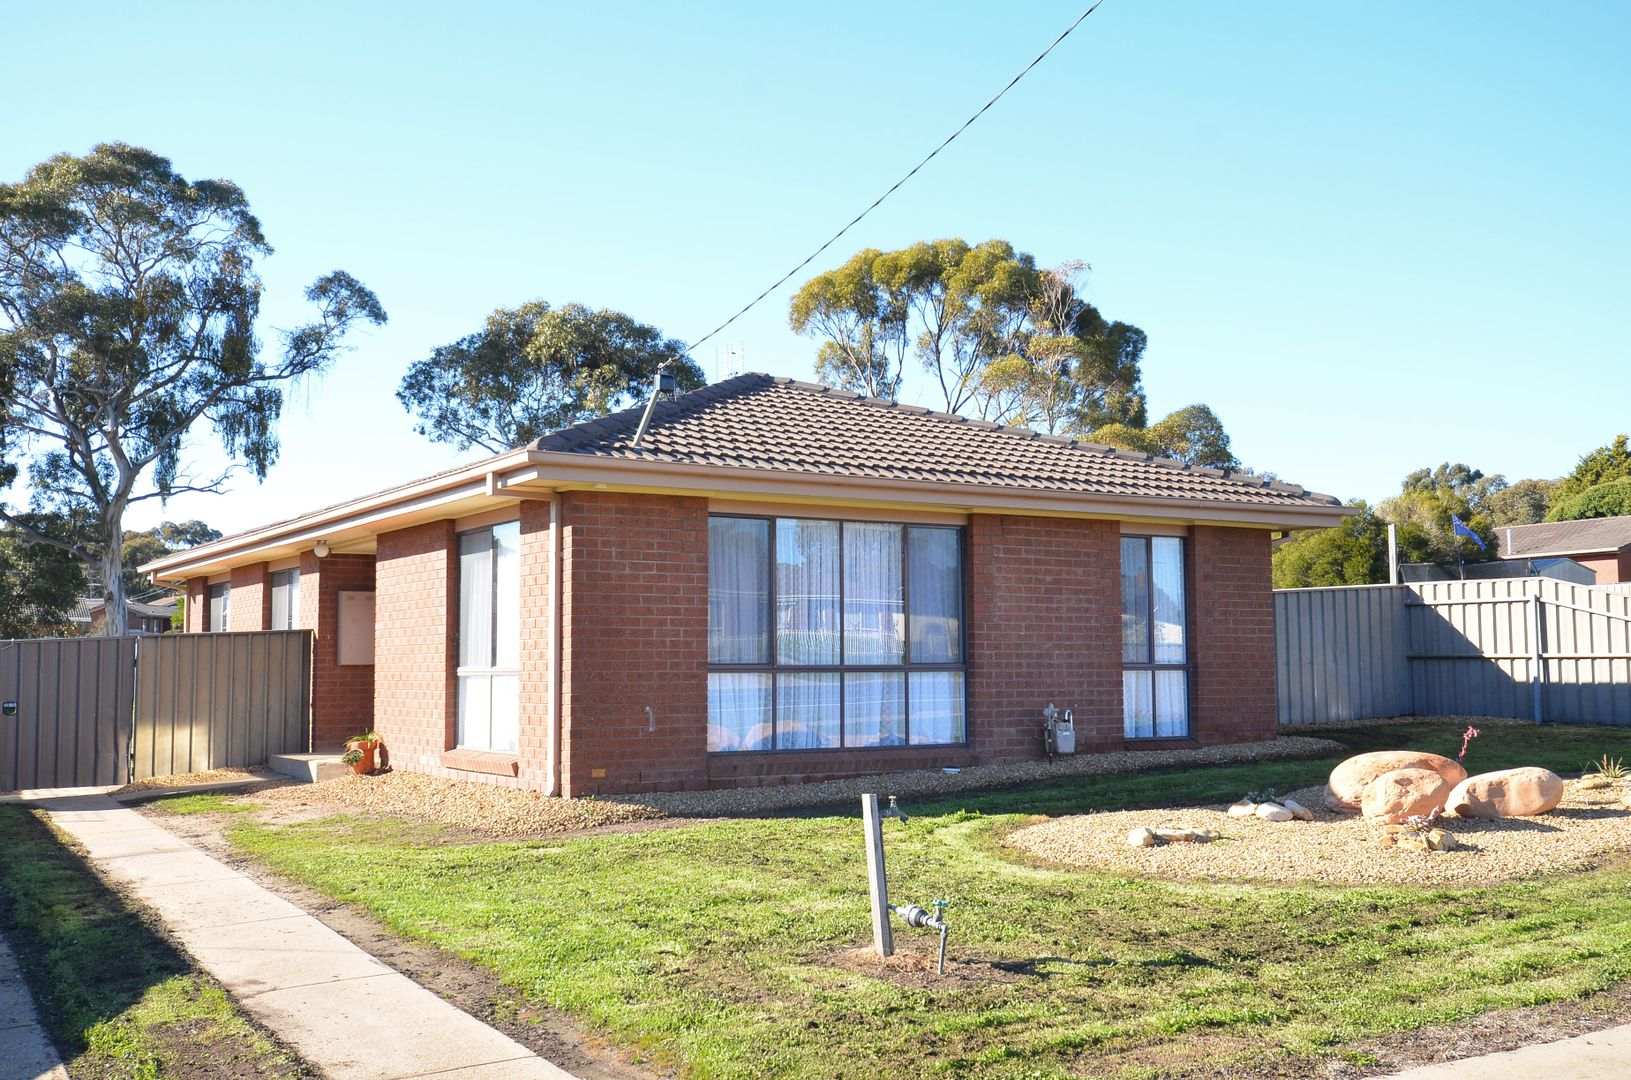 13 London Road, Stawell VIC 3380, Image 0